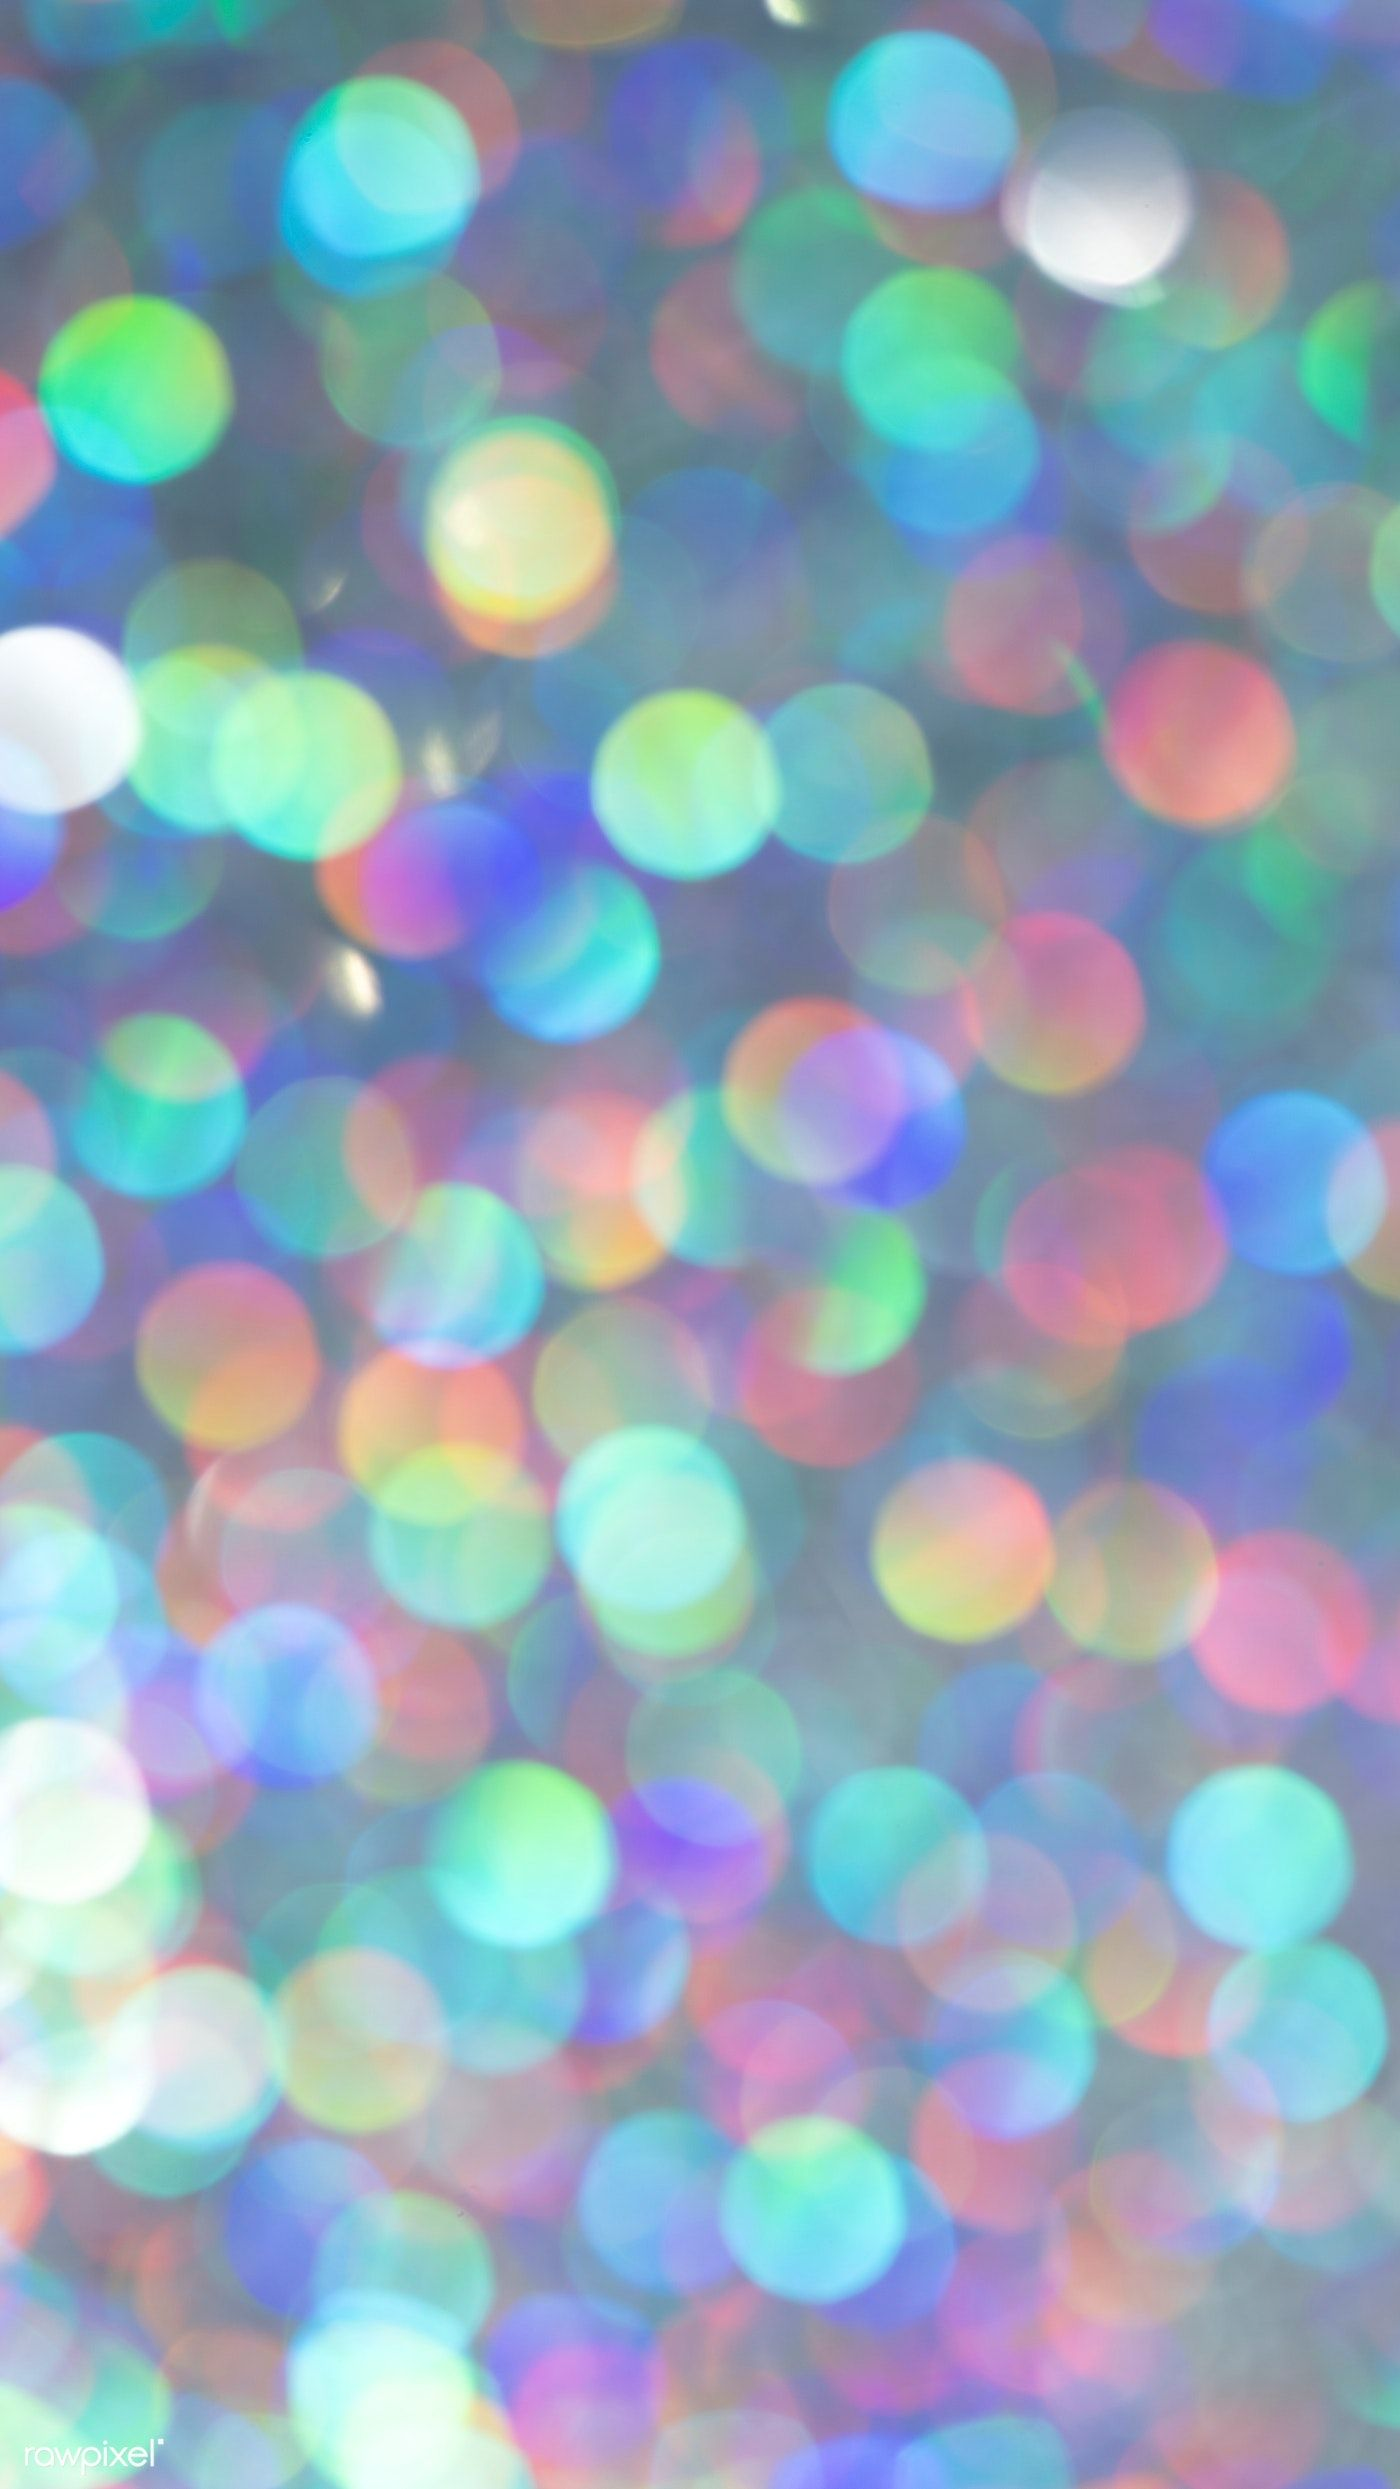 Abstract Bokeh Blurred Lights Background Free Image By Rawpixel Com Teddy Rawpixel Blurred Lights Lights Background Iphone Wallpaper Glitter